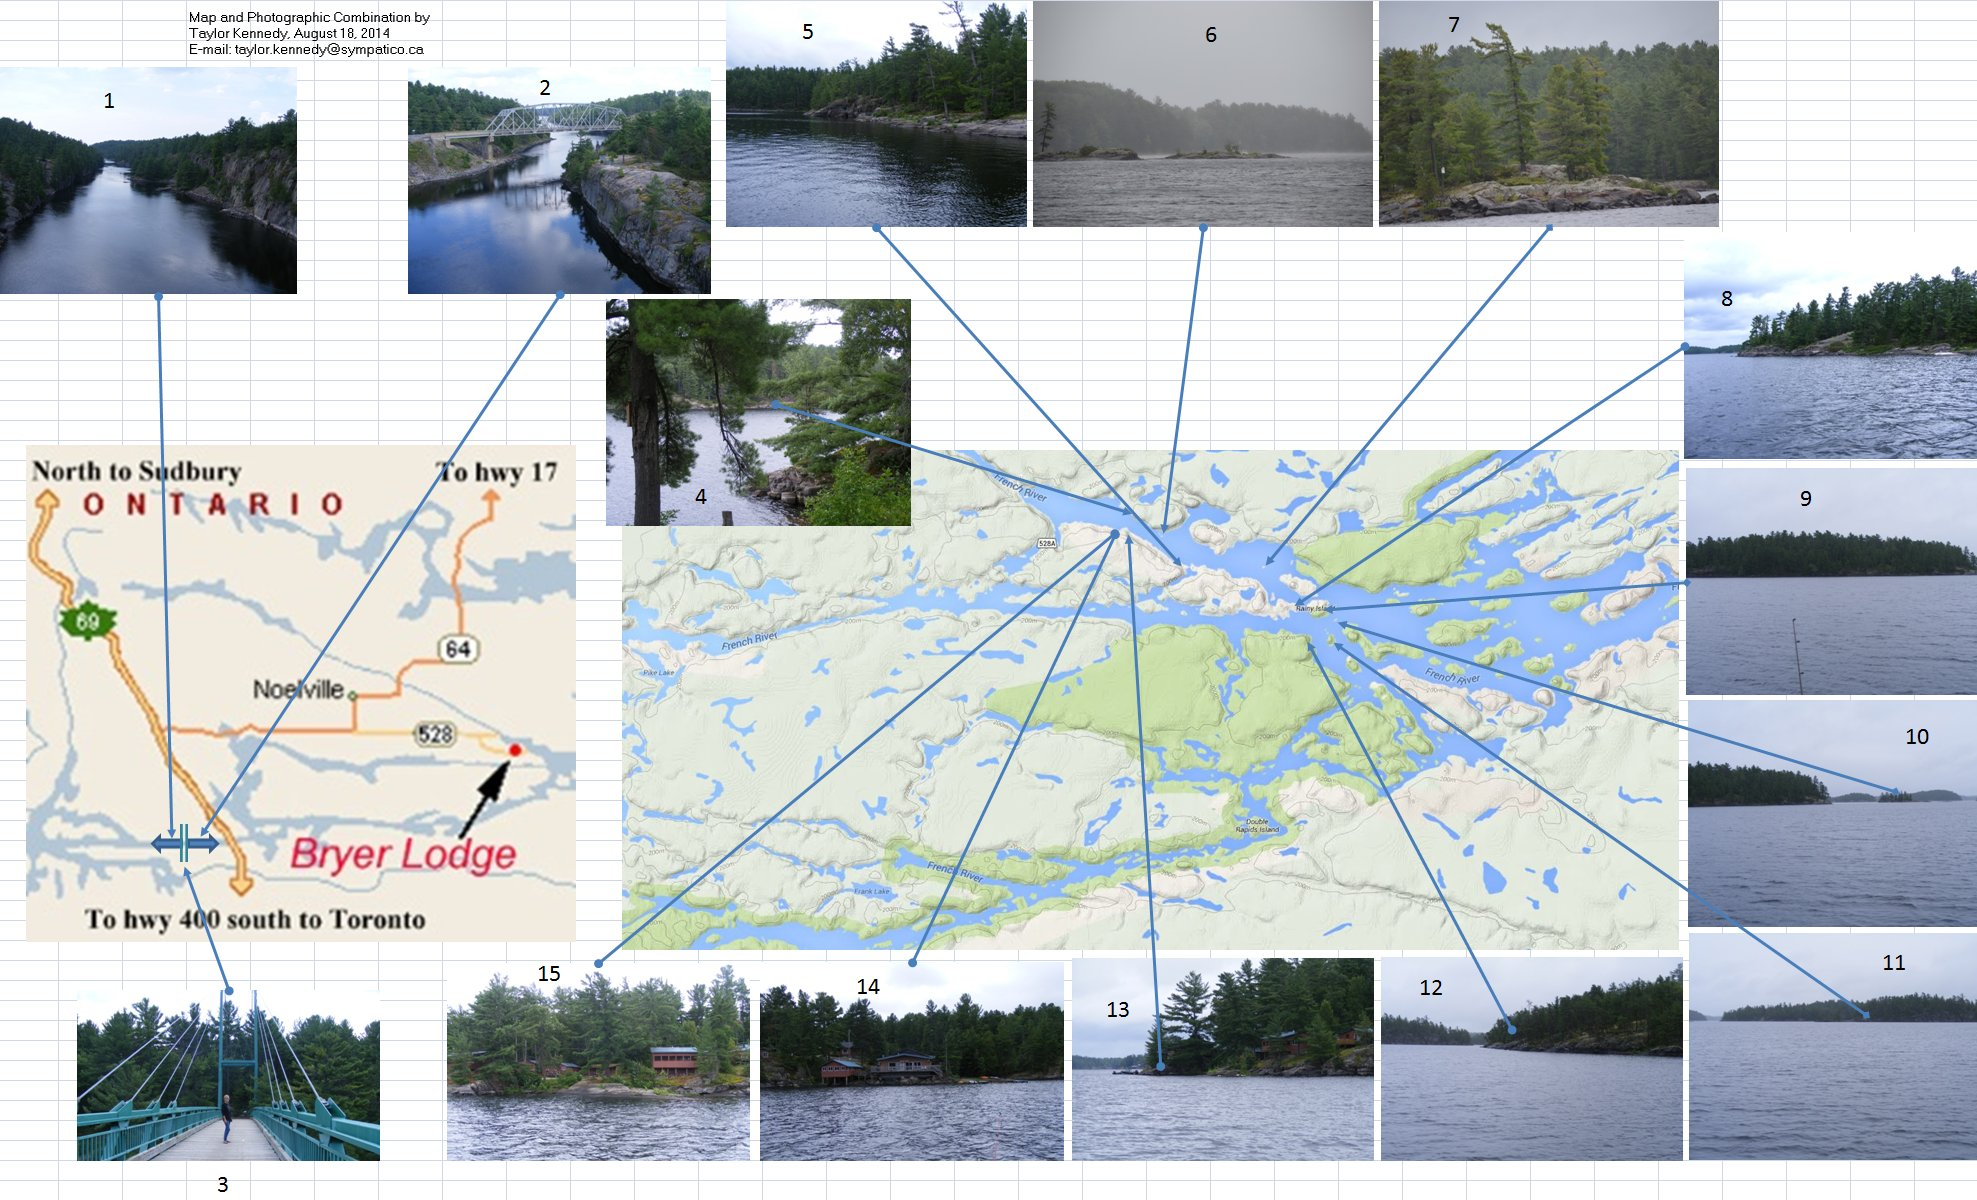 French River, Map and Photographs by Taylor Kennedy